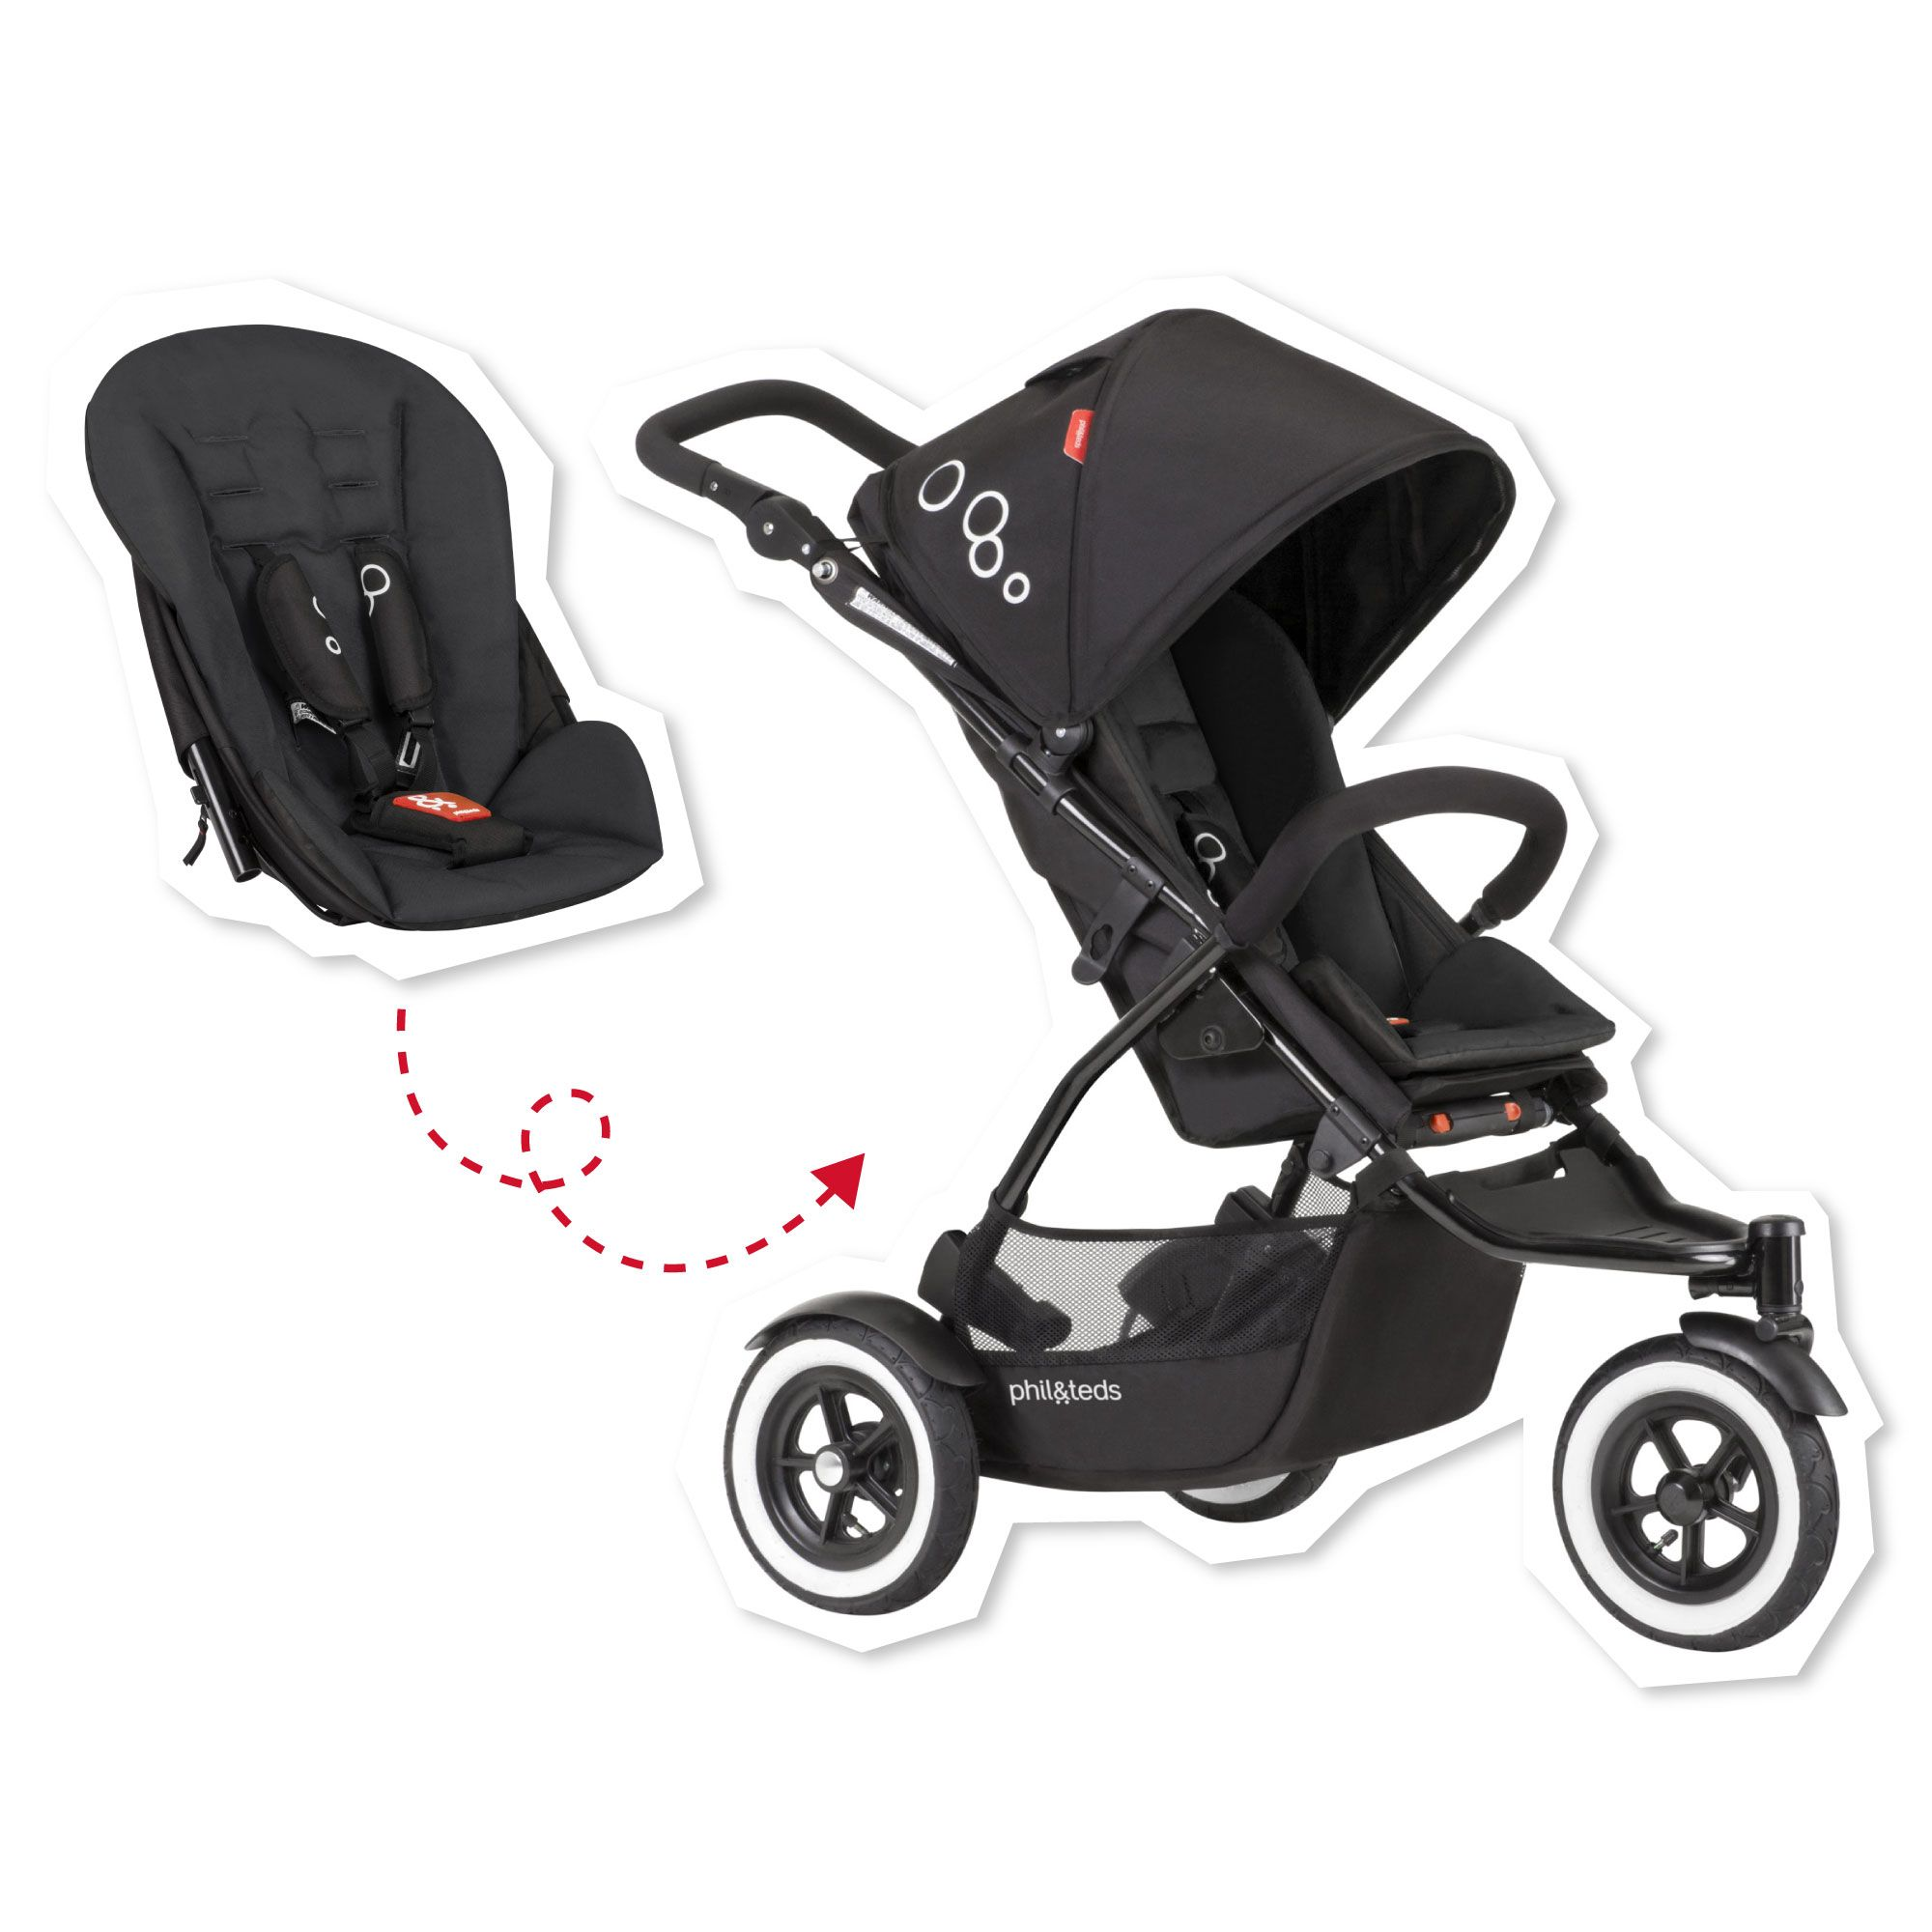 phil&teds DOT stroller. A compact stroller for one or two